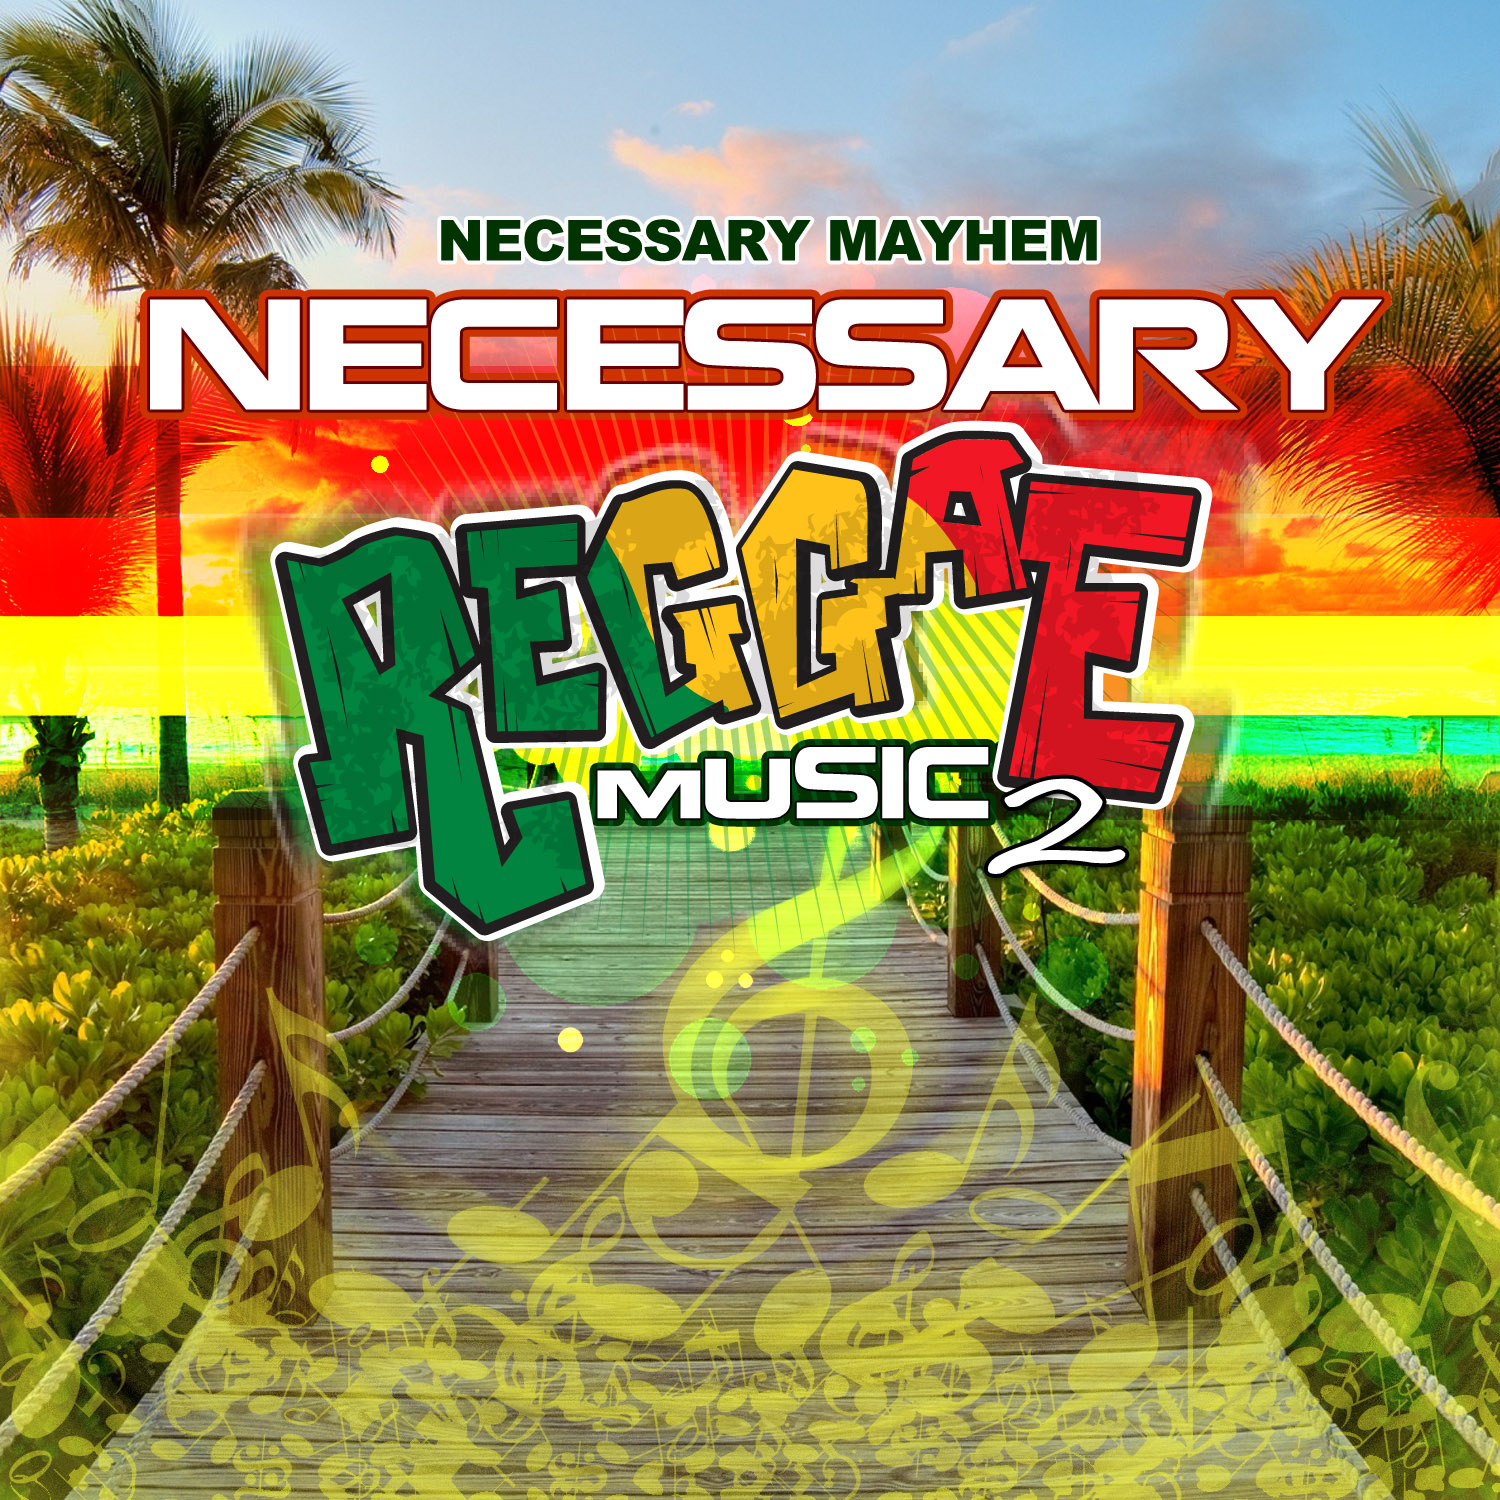 Necessassry-Mayhem-Necessary-Reggae-Music-2-artwork